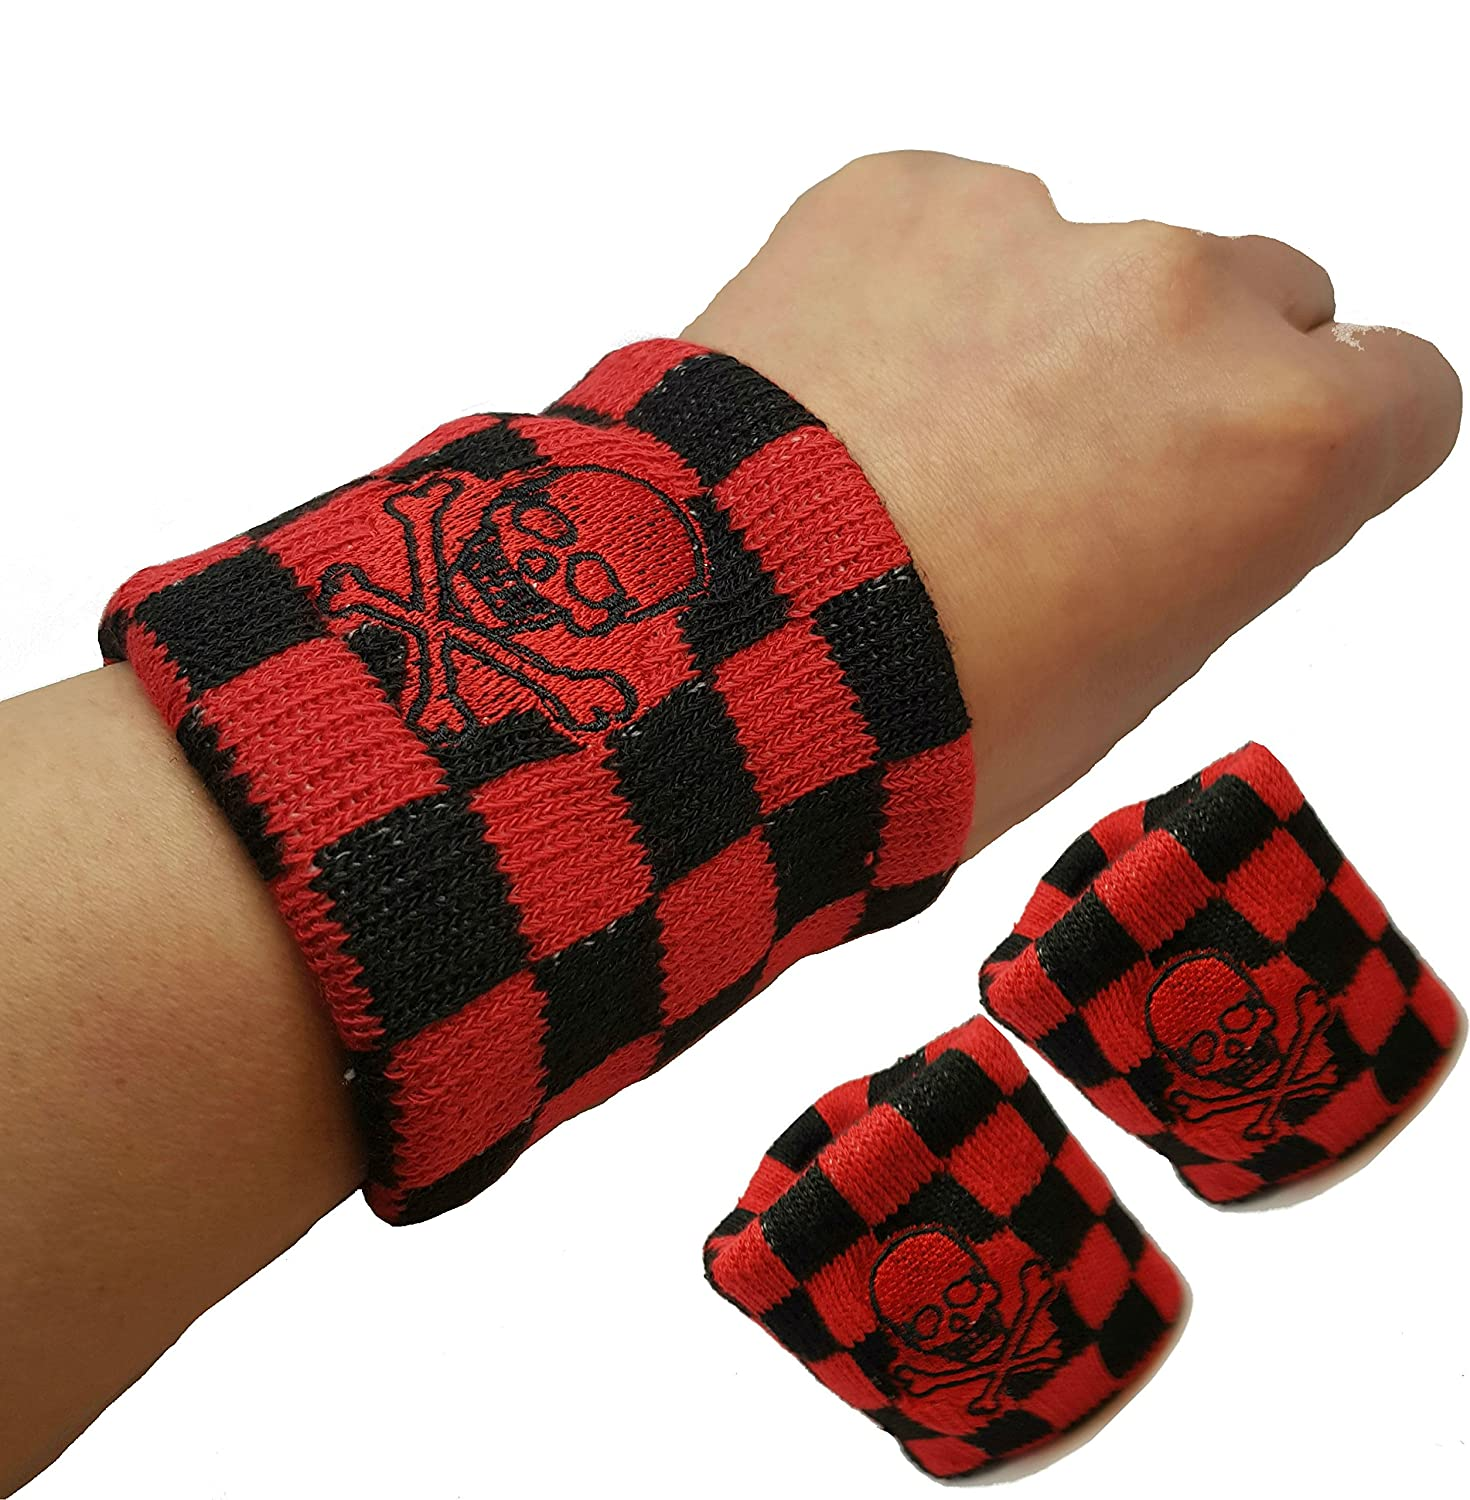 Vonchic Sport Sweatband Checkered Black Red Pirate Skull Cross Bone Logo Sports Sweatbands/Wristbands 1Pair Ningbo General Union